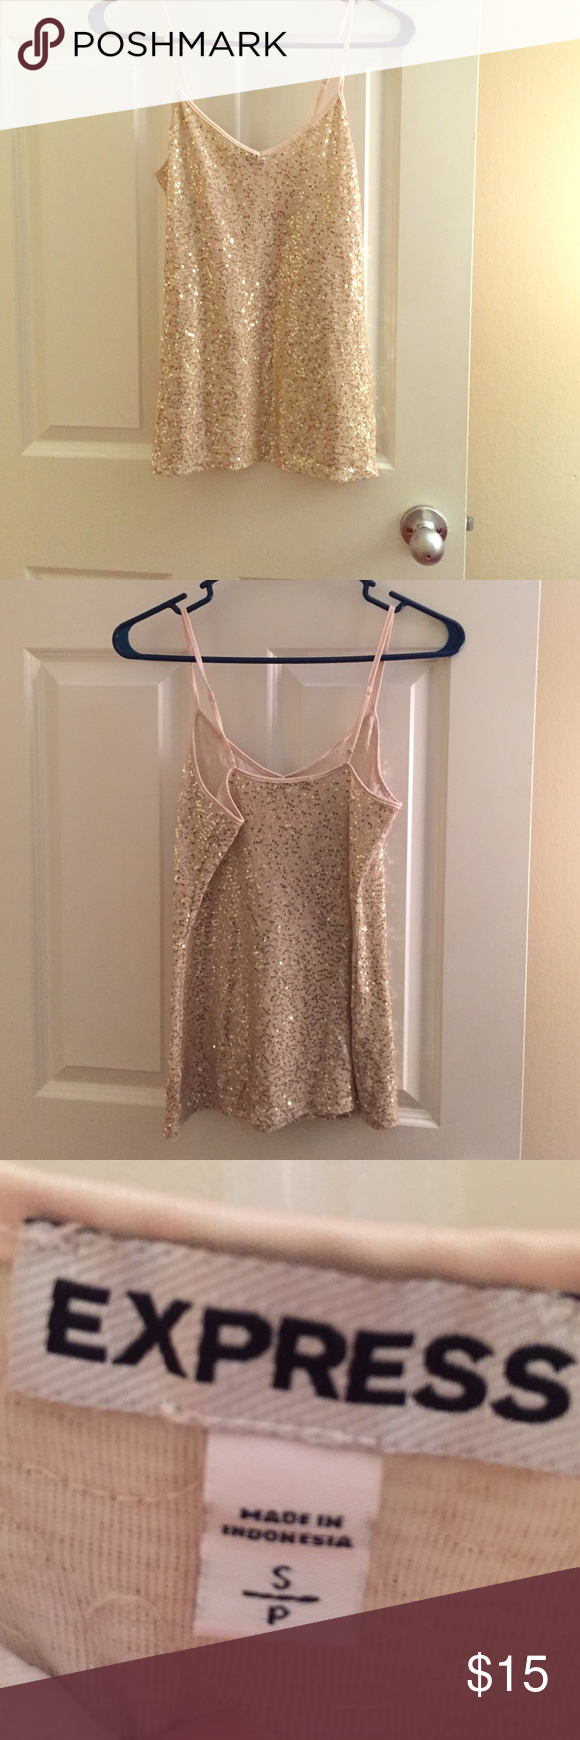 Sequins Express Tank Top Spaghetti Strap tank top. Gold Sequins. S. Express. Express Tops Tank Tops